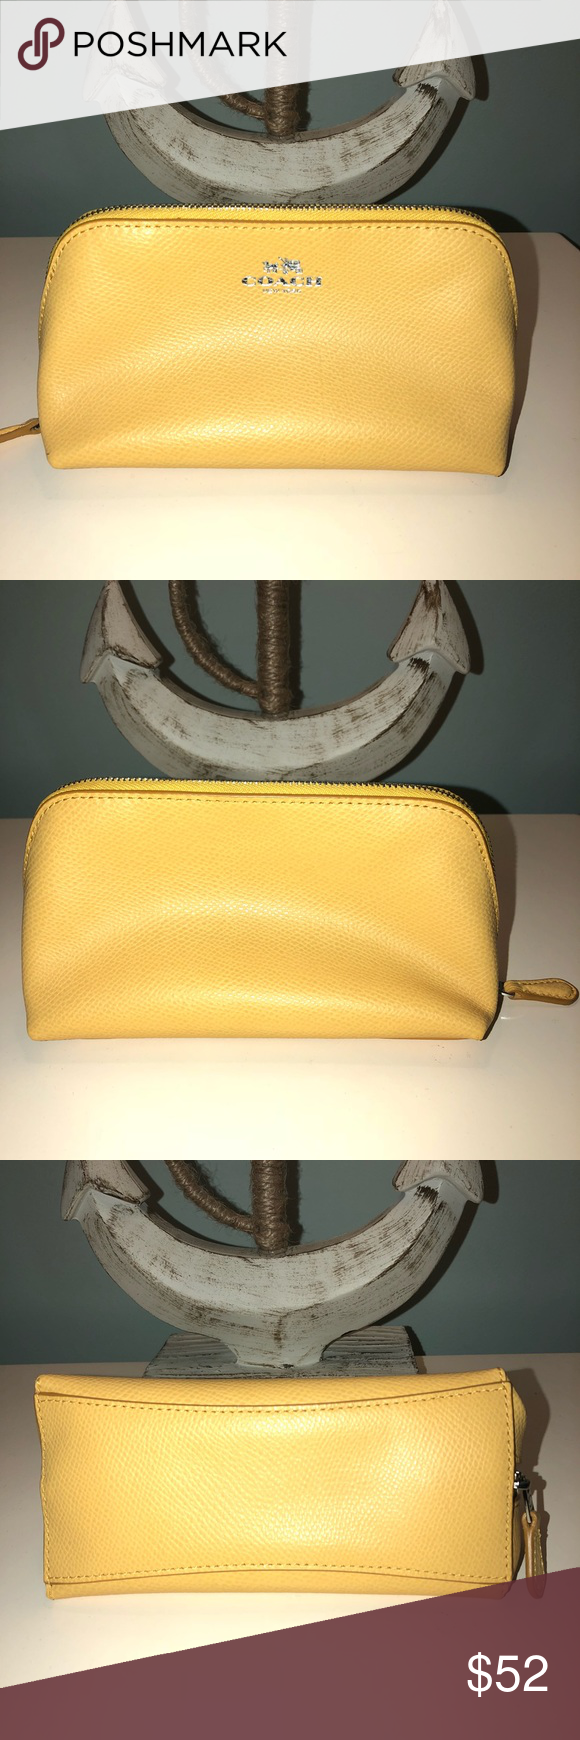 Small, Classic, & Simple Yellow Coach Bag🌻 This classic